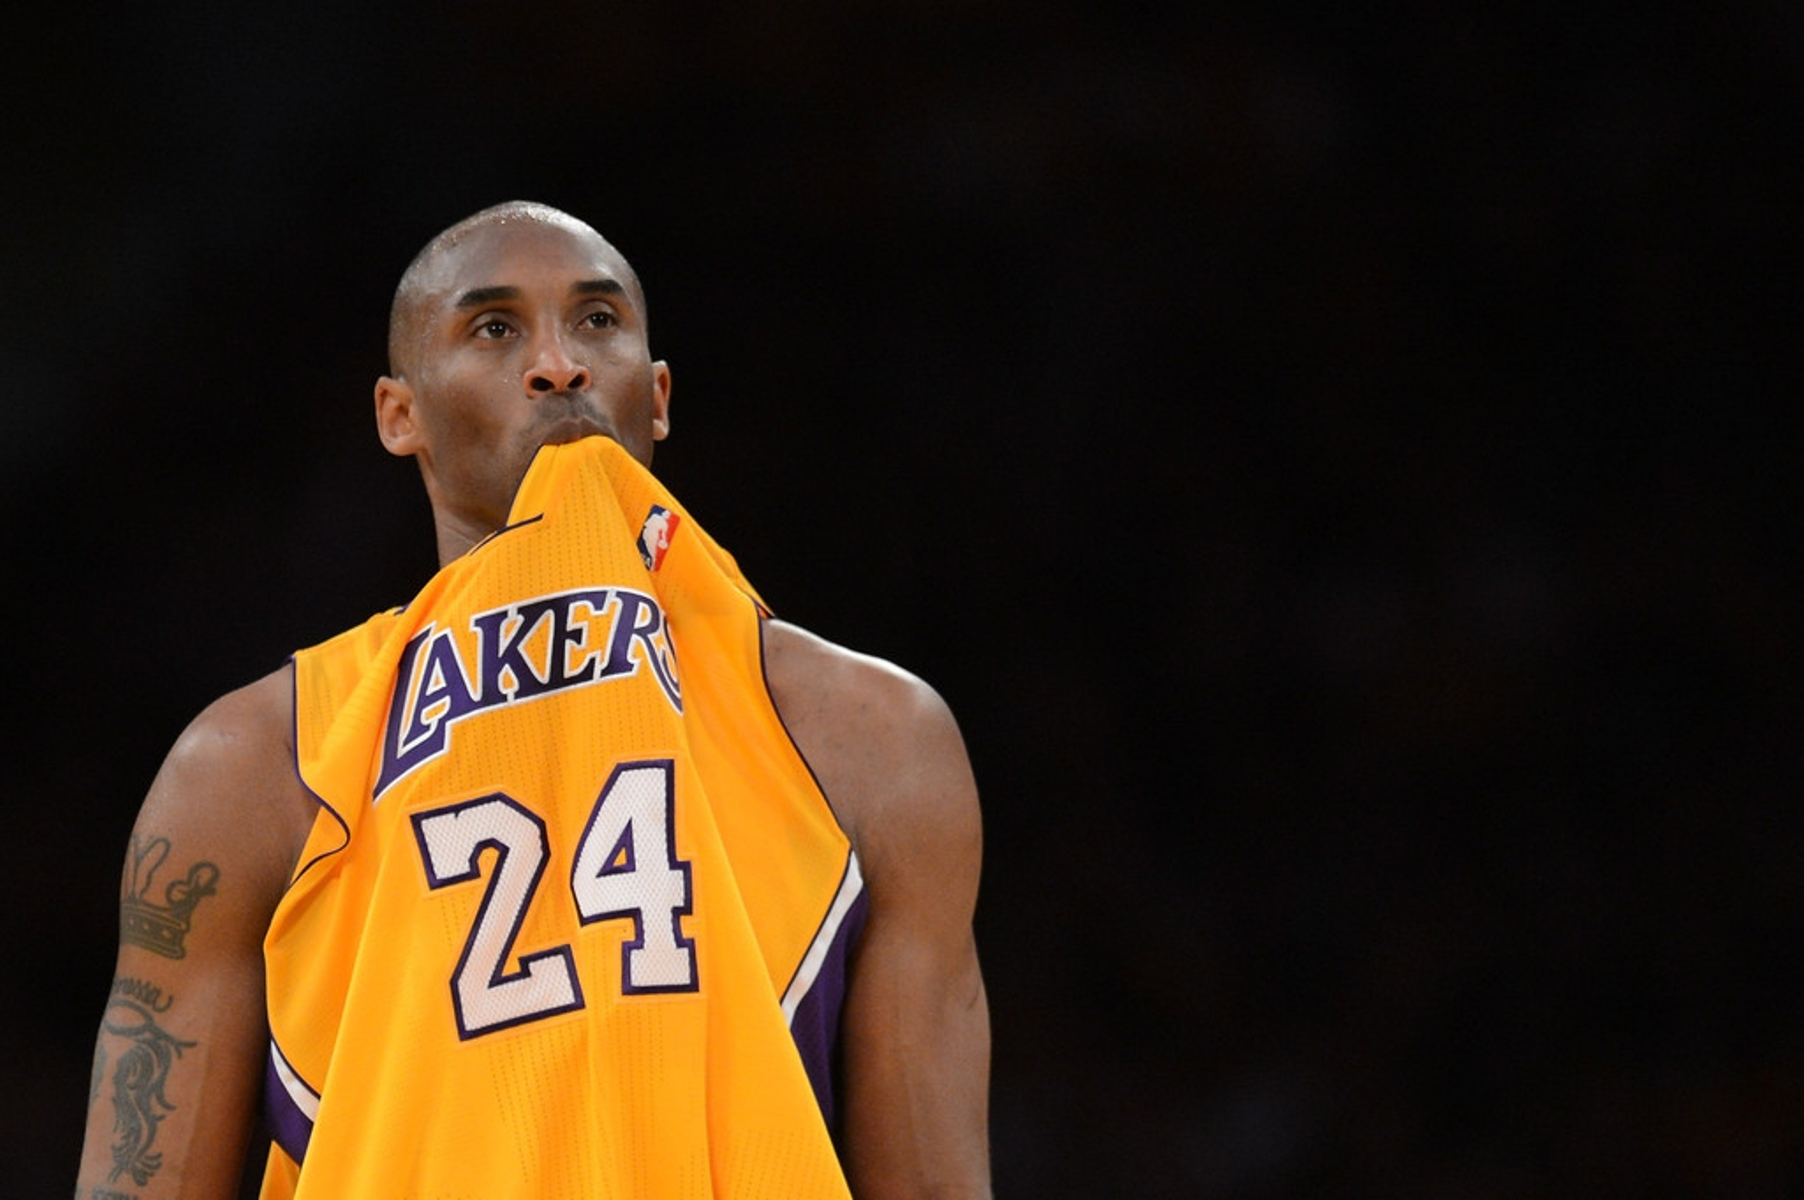 kobe bryant hd wallpapers for desktop download